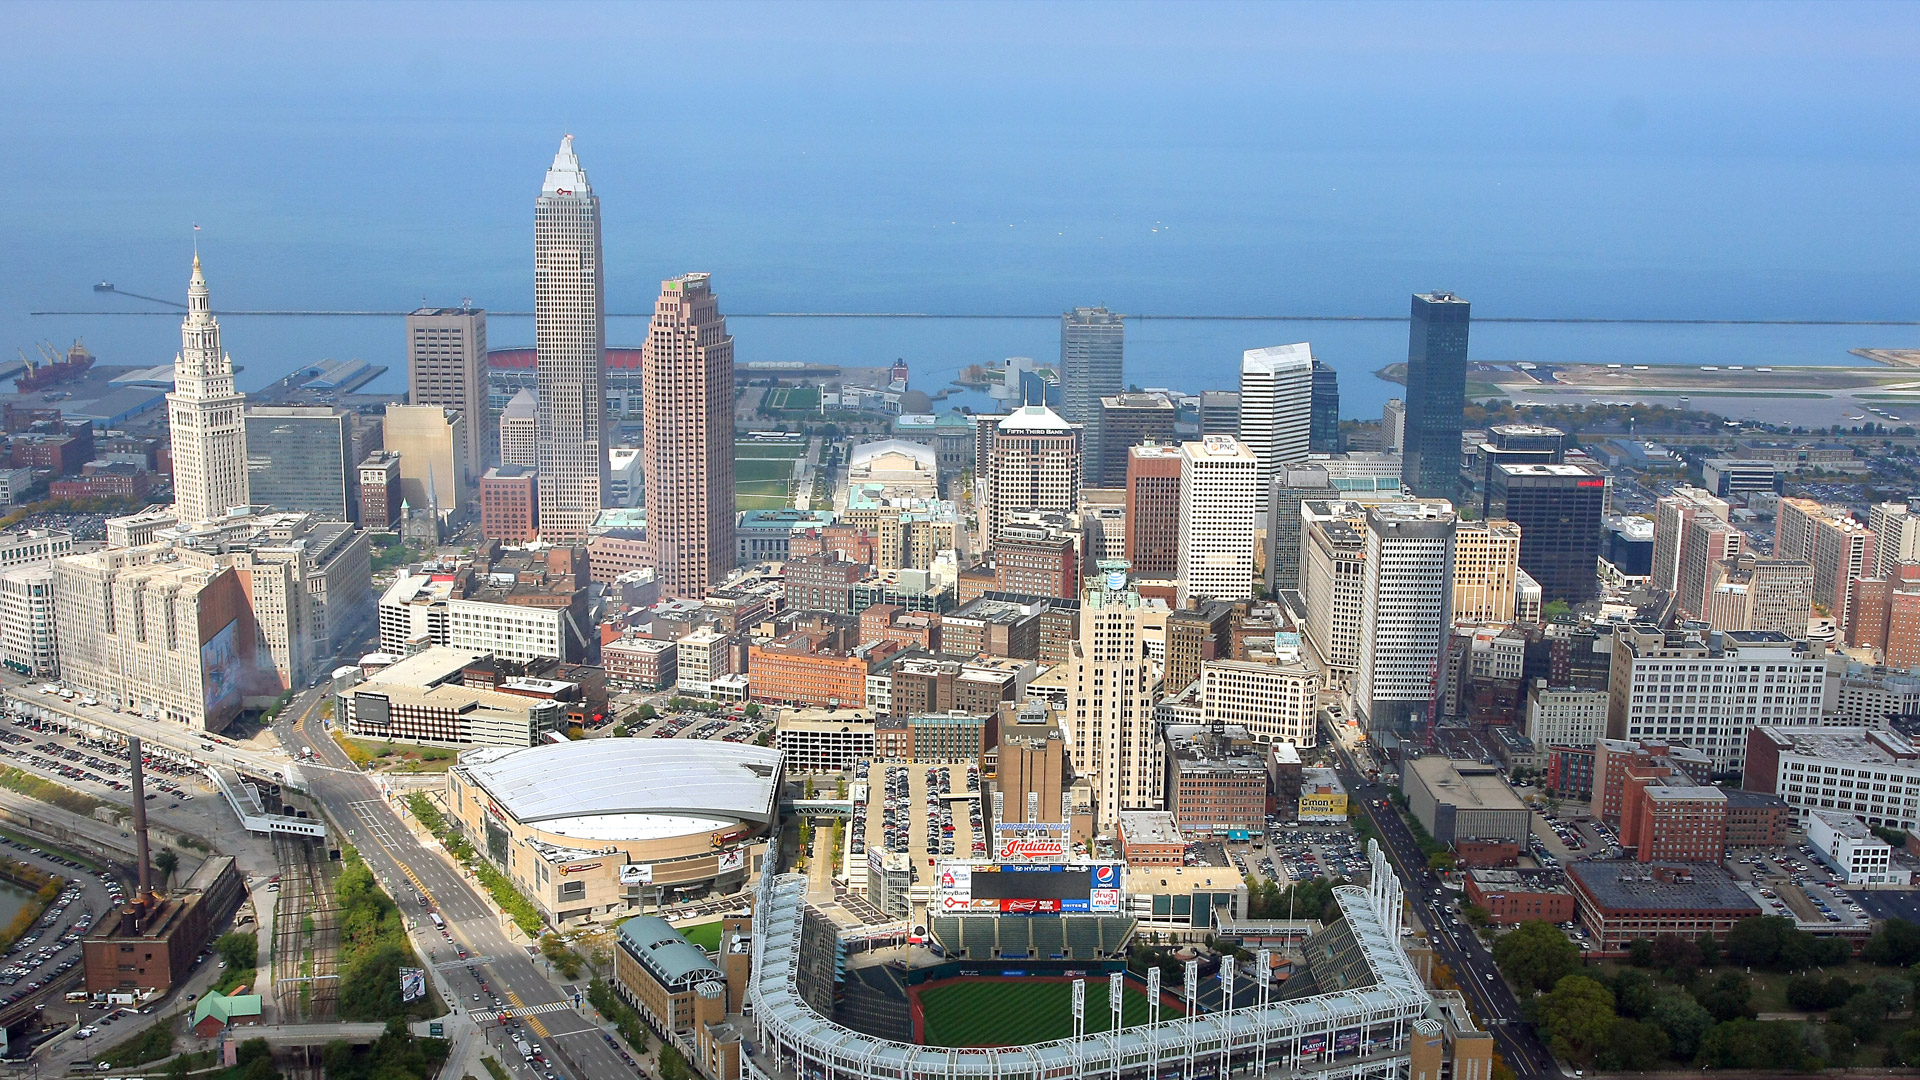 Ariel view of the city of Cleveland